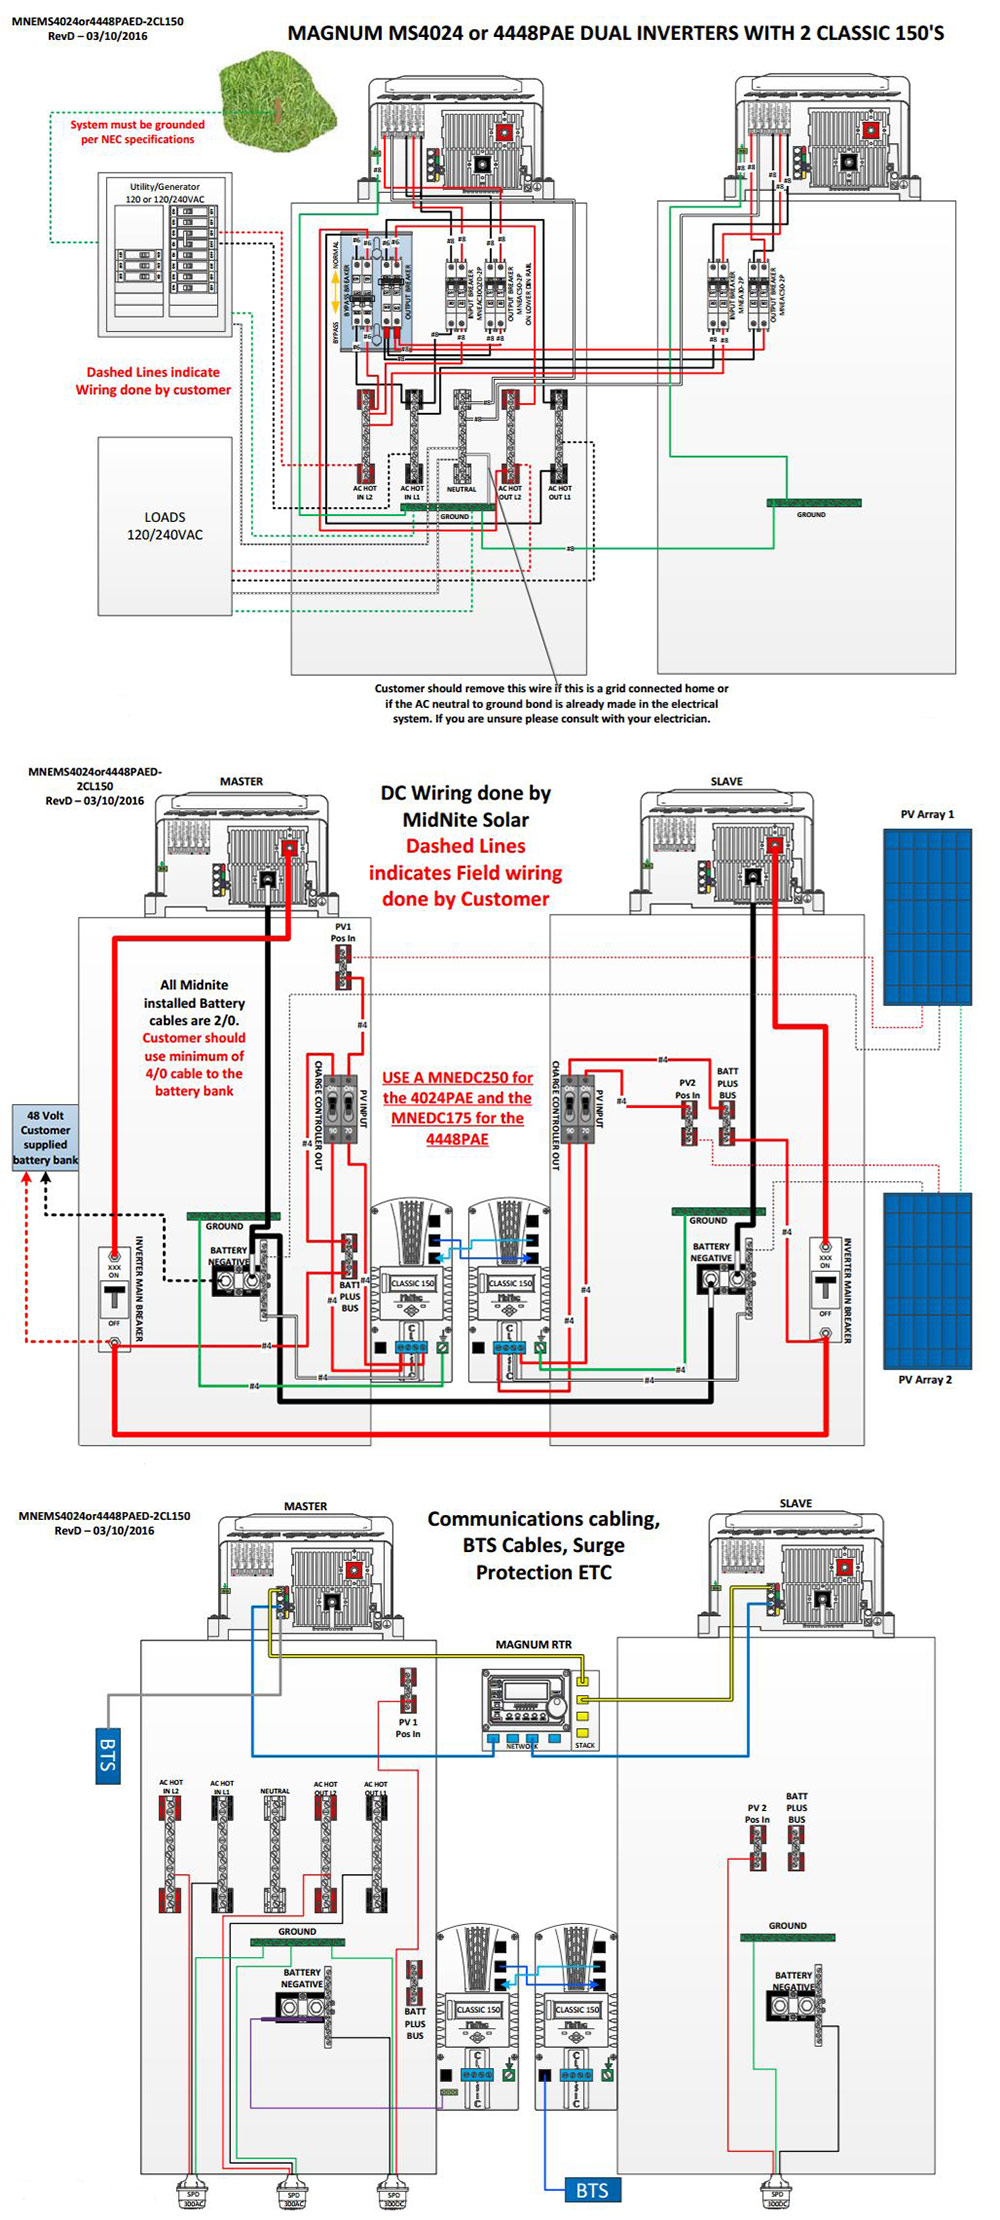 MNEMS4448PAED-2CLA150 wiring diagram